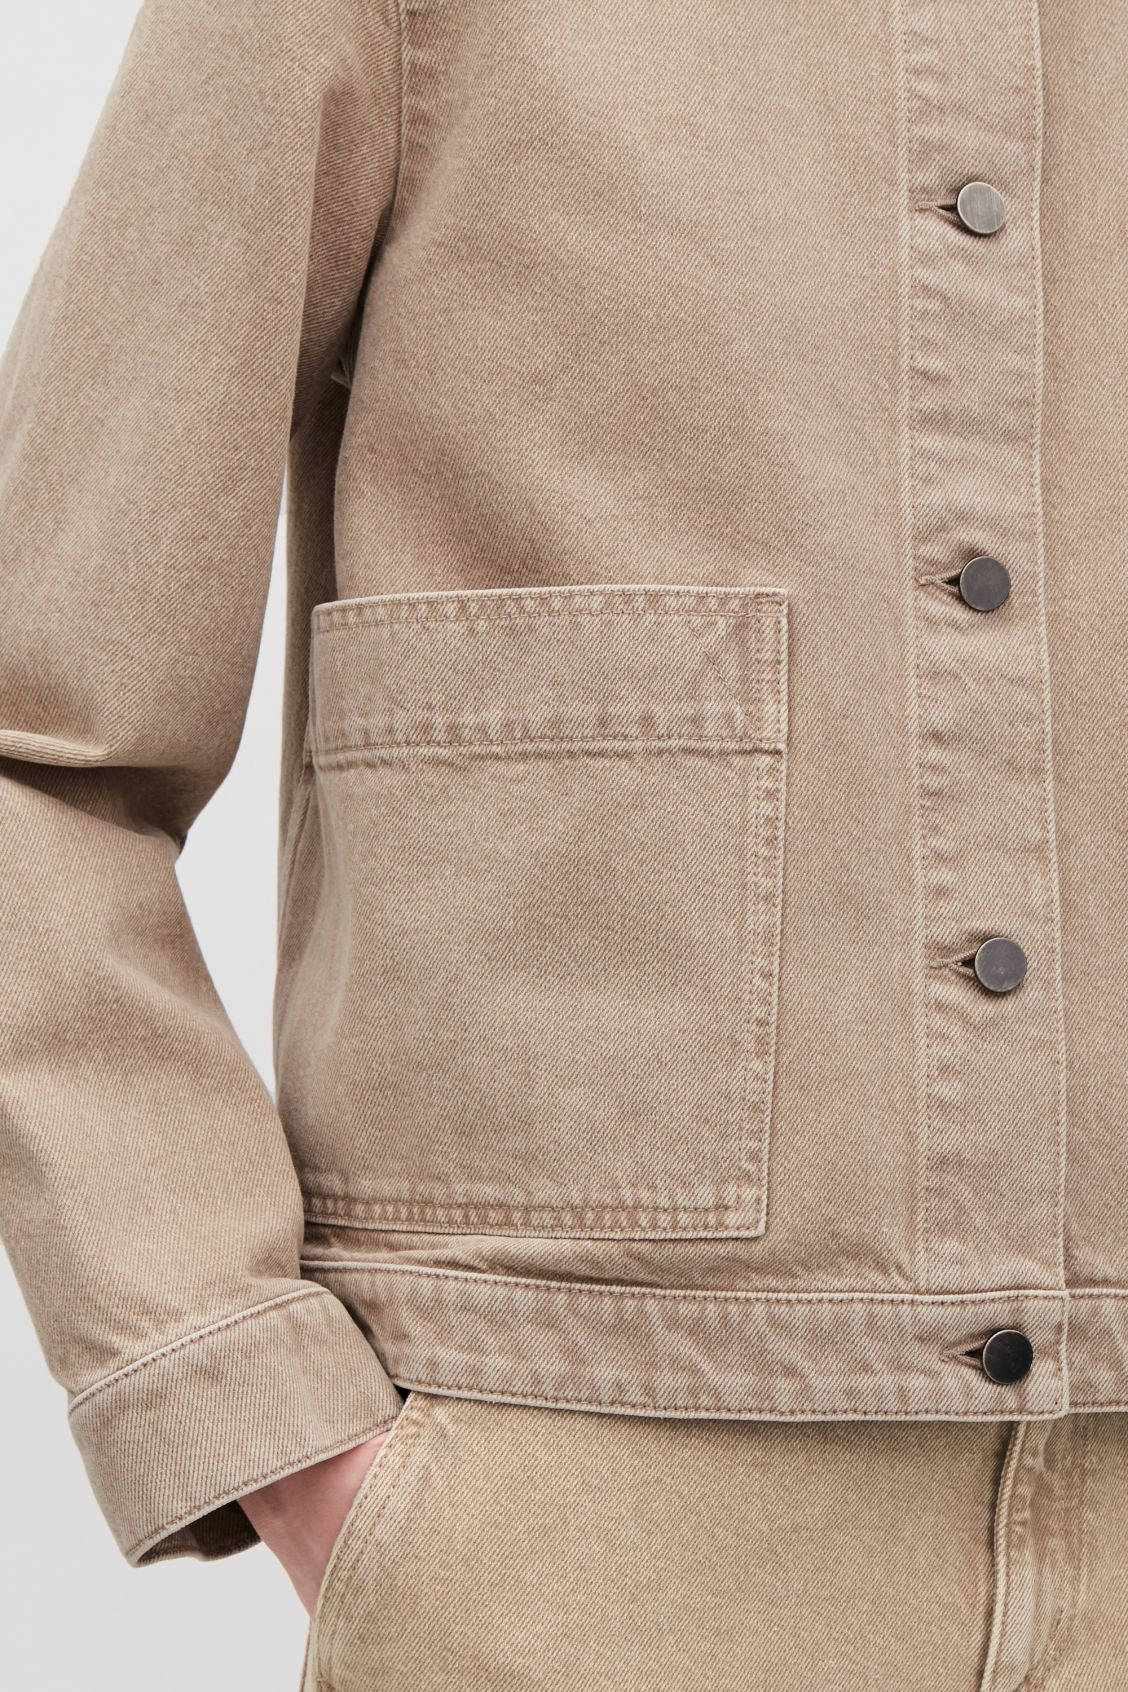 DENIM JACKET WITH PATCH POCKETS - Warm sand - Coats and